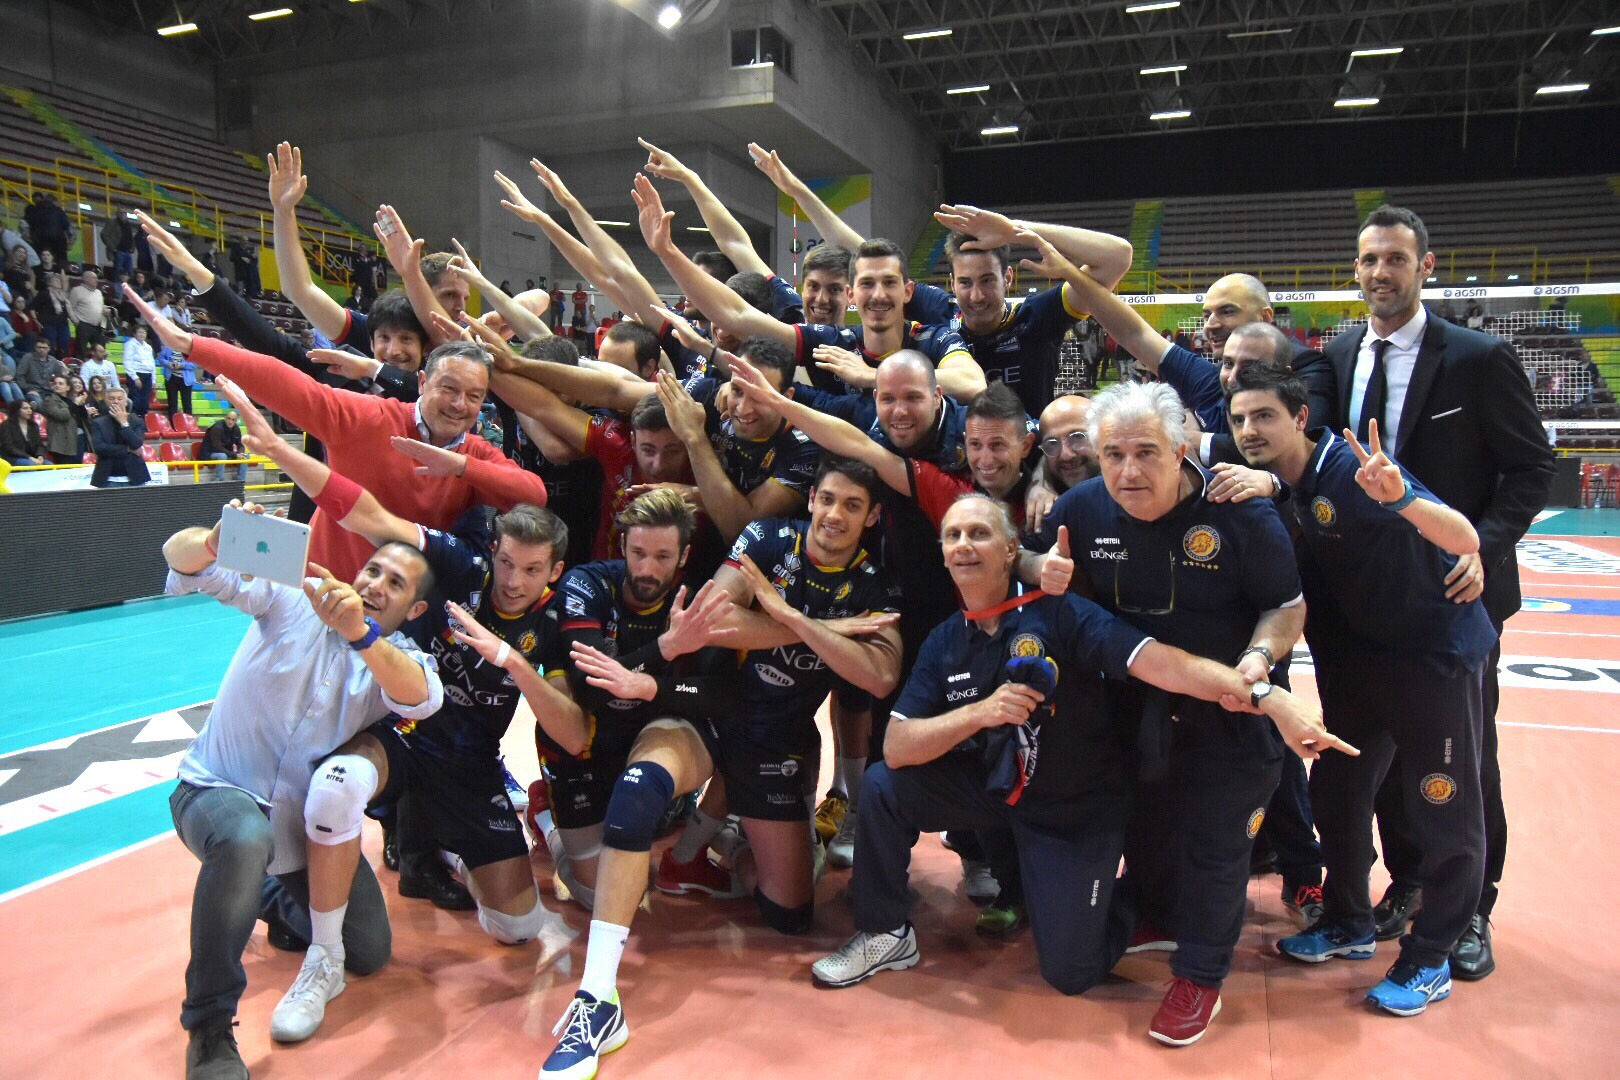 Ravenna goes back to Europe! It has qualified for the Challenge Cup!